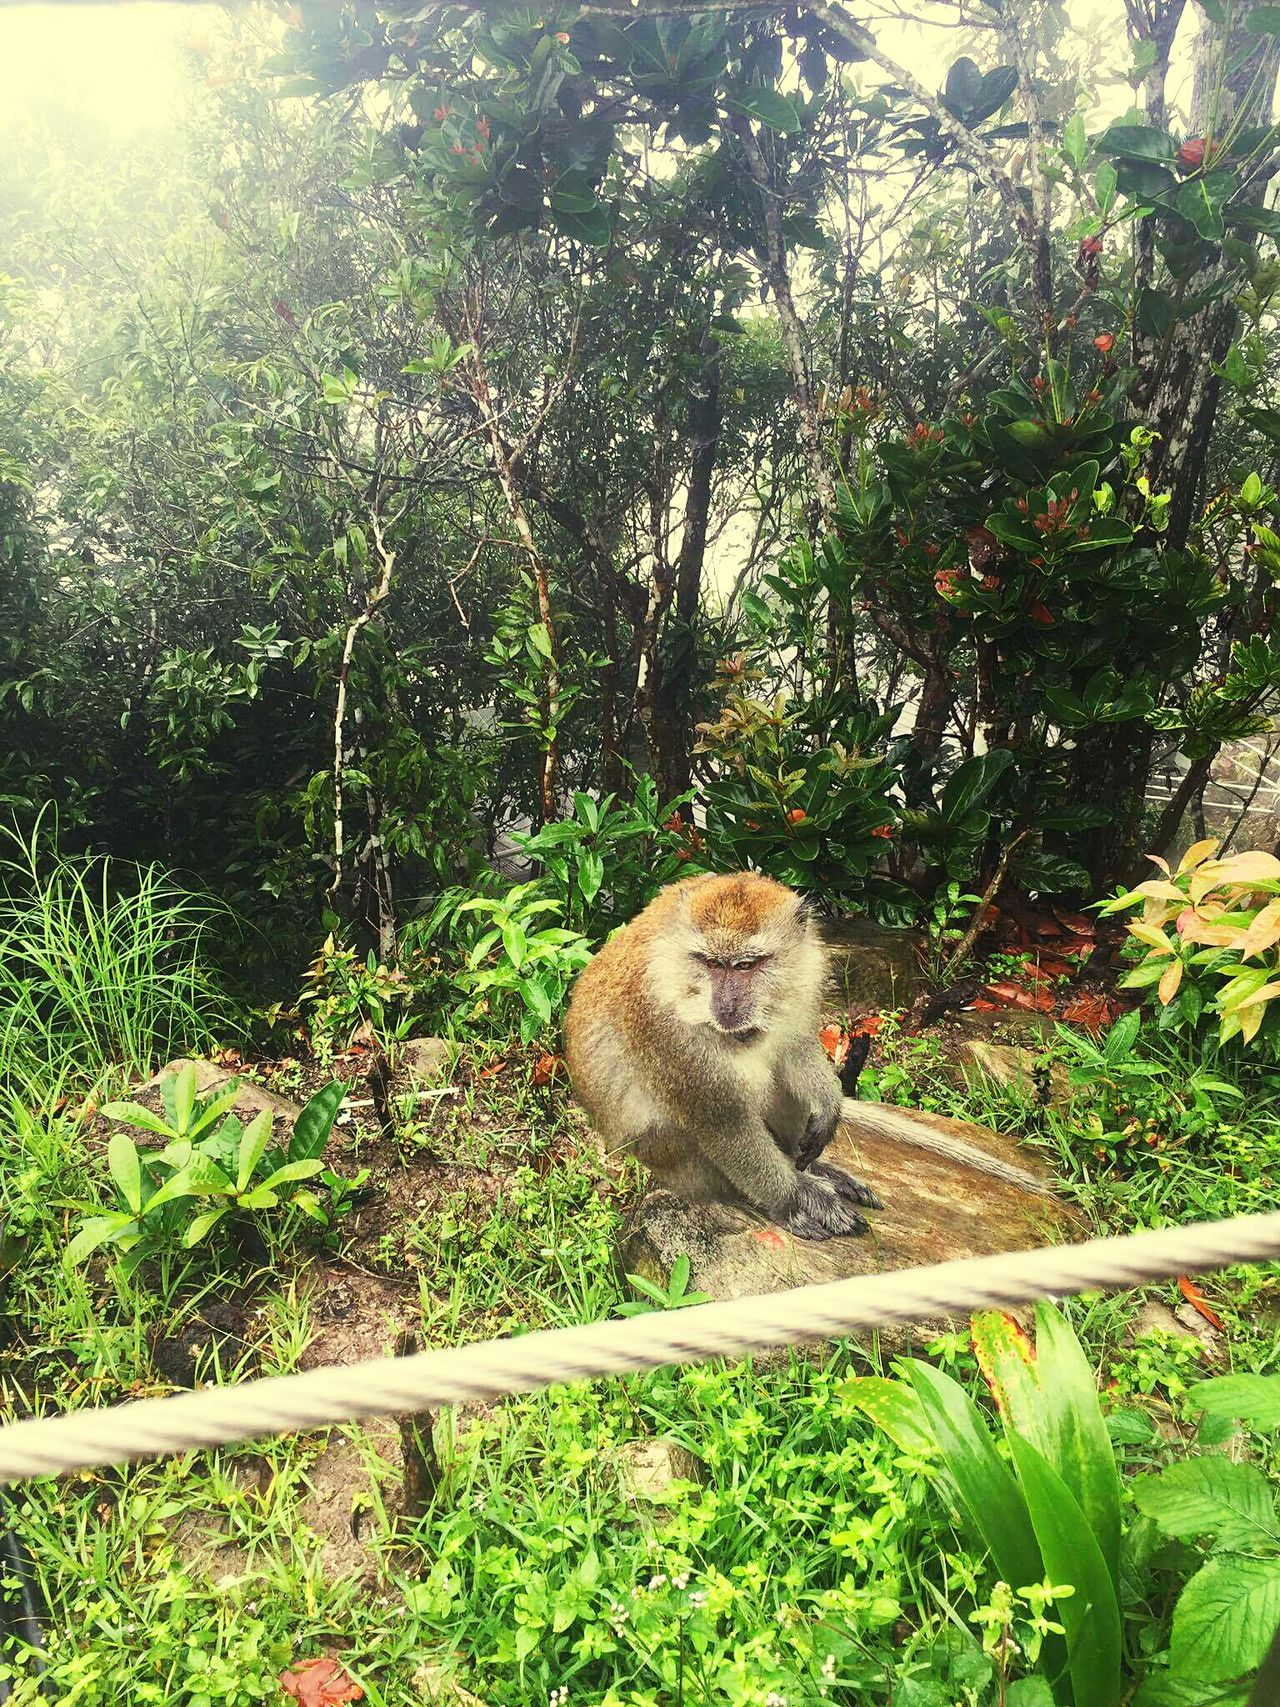 Animal Themes One Animal Tree Nature Animals In The Wild No People Animal Wildlife Outdoors Day Traveling Tourism Forest Wildlife Jungle Langkawai Malaysia Monkey